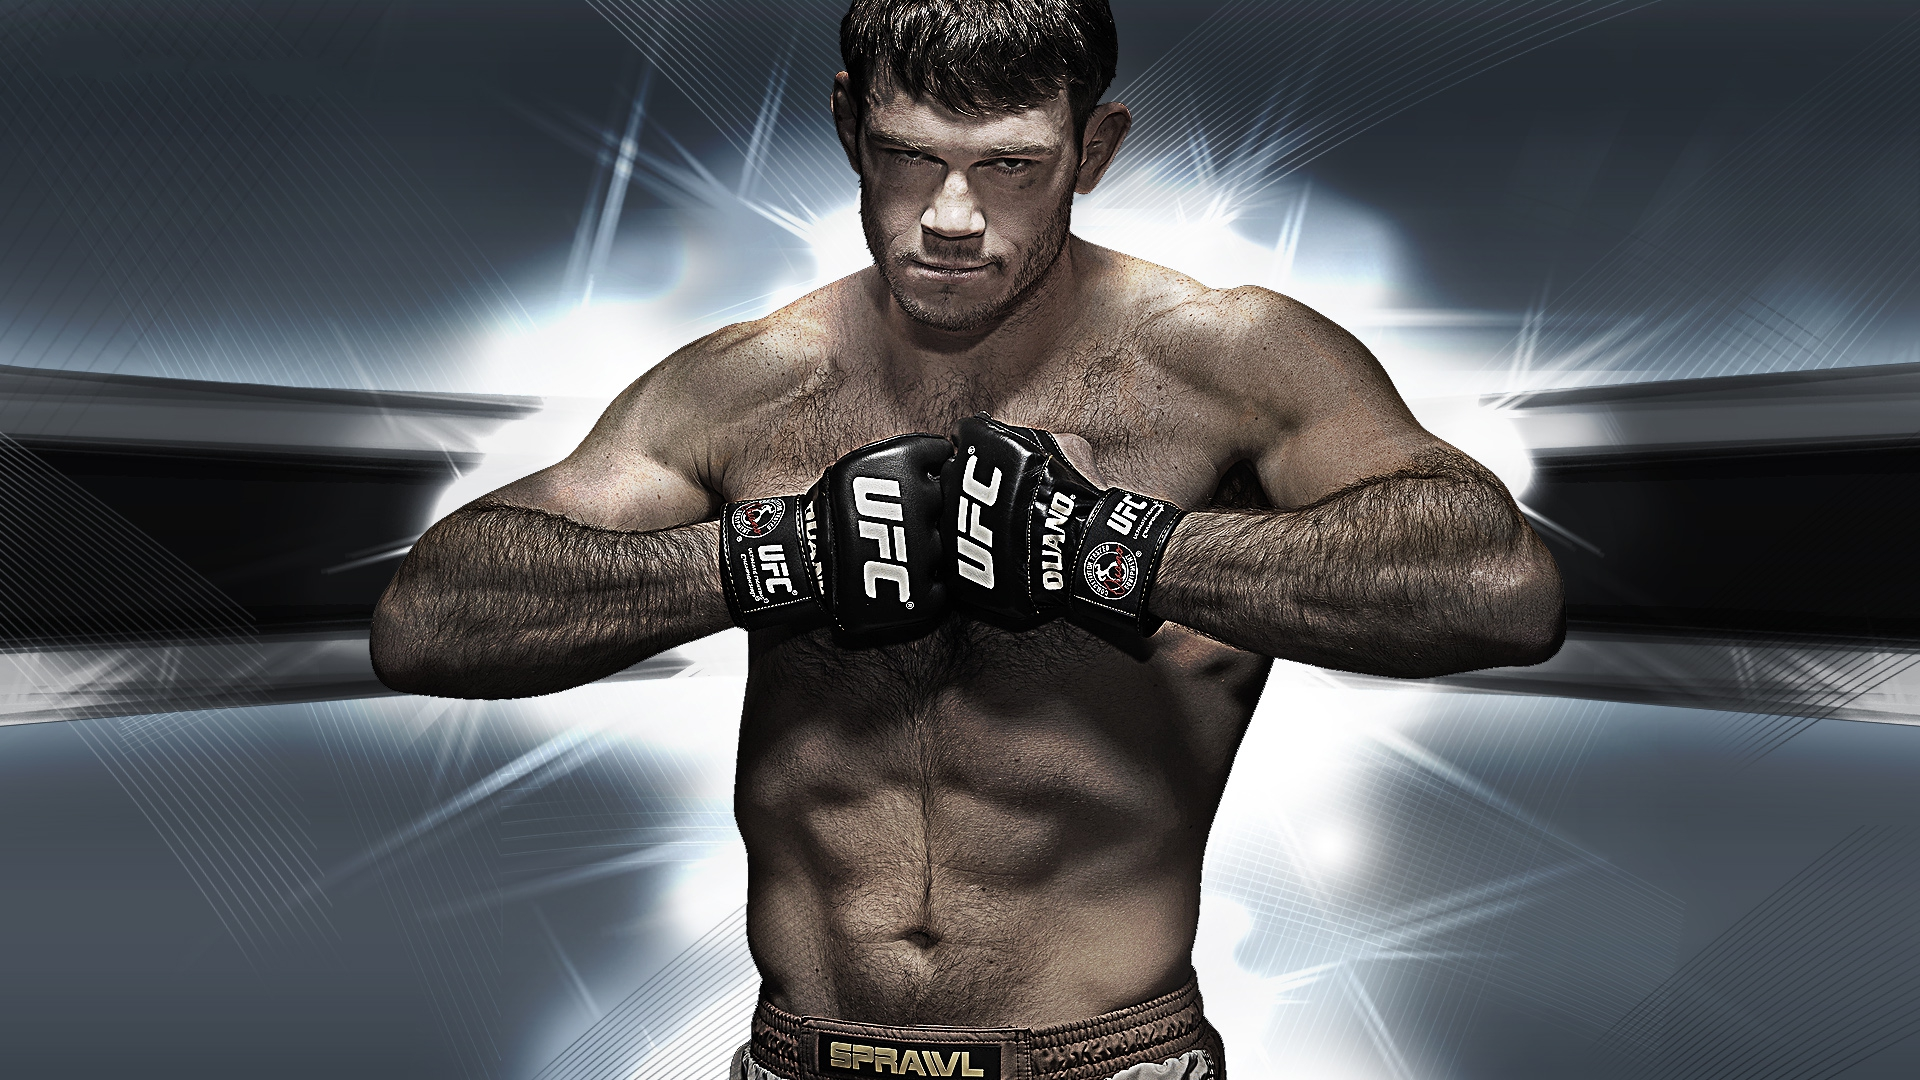 Ufc Backgrounds Download 1920x1080